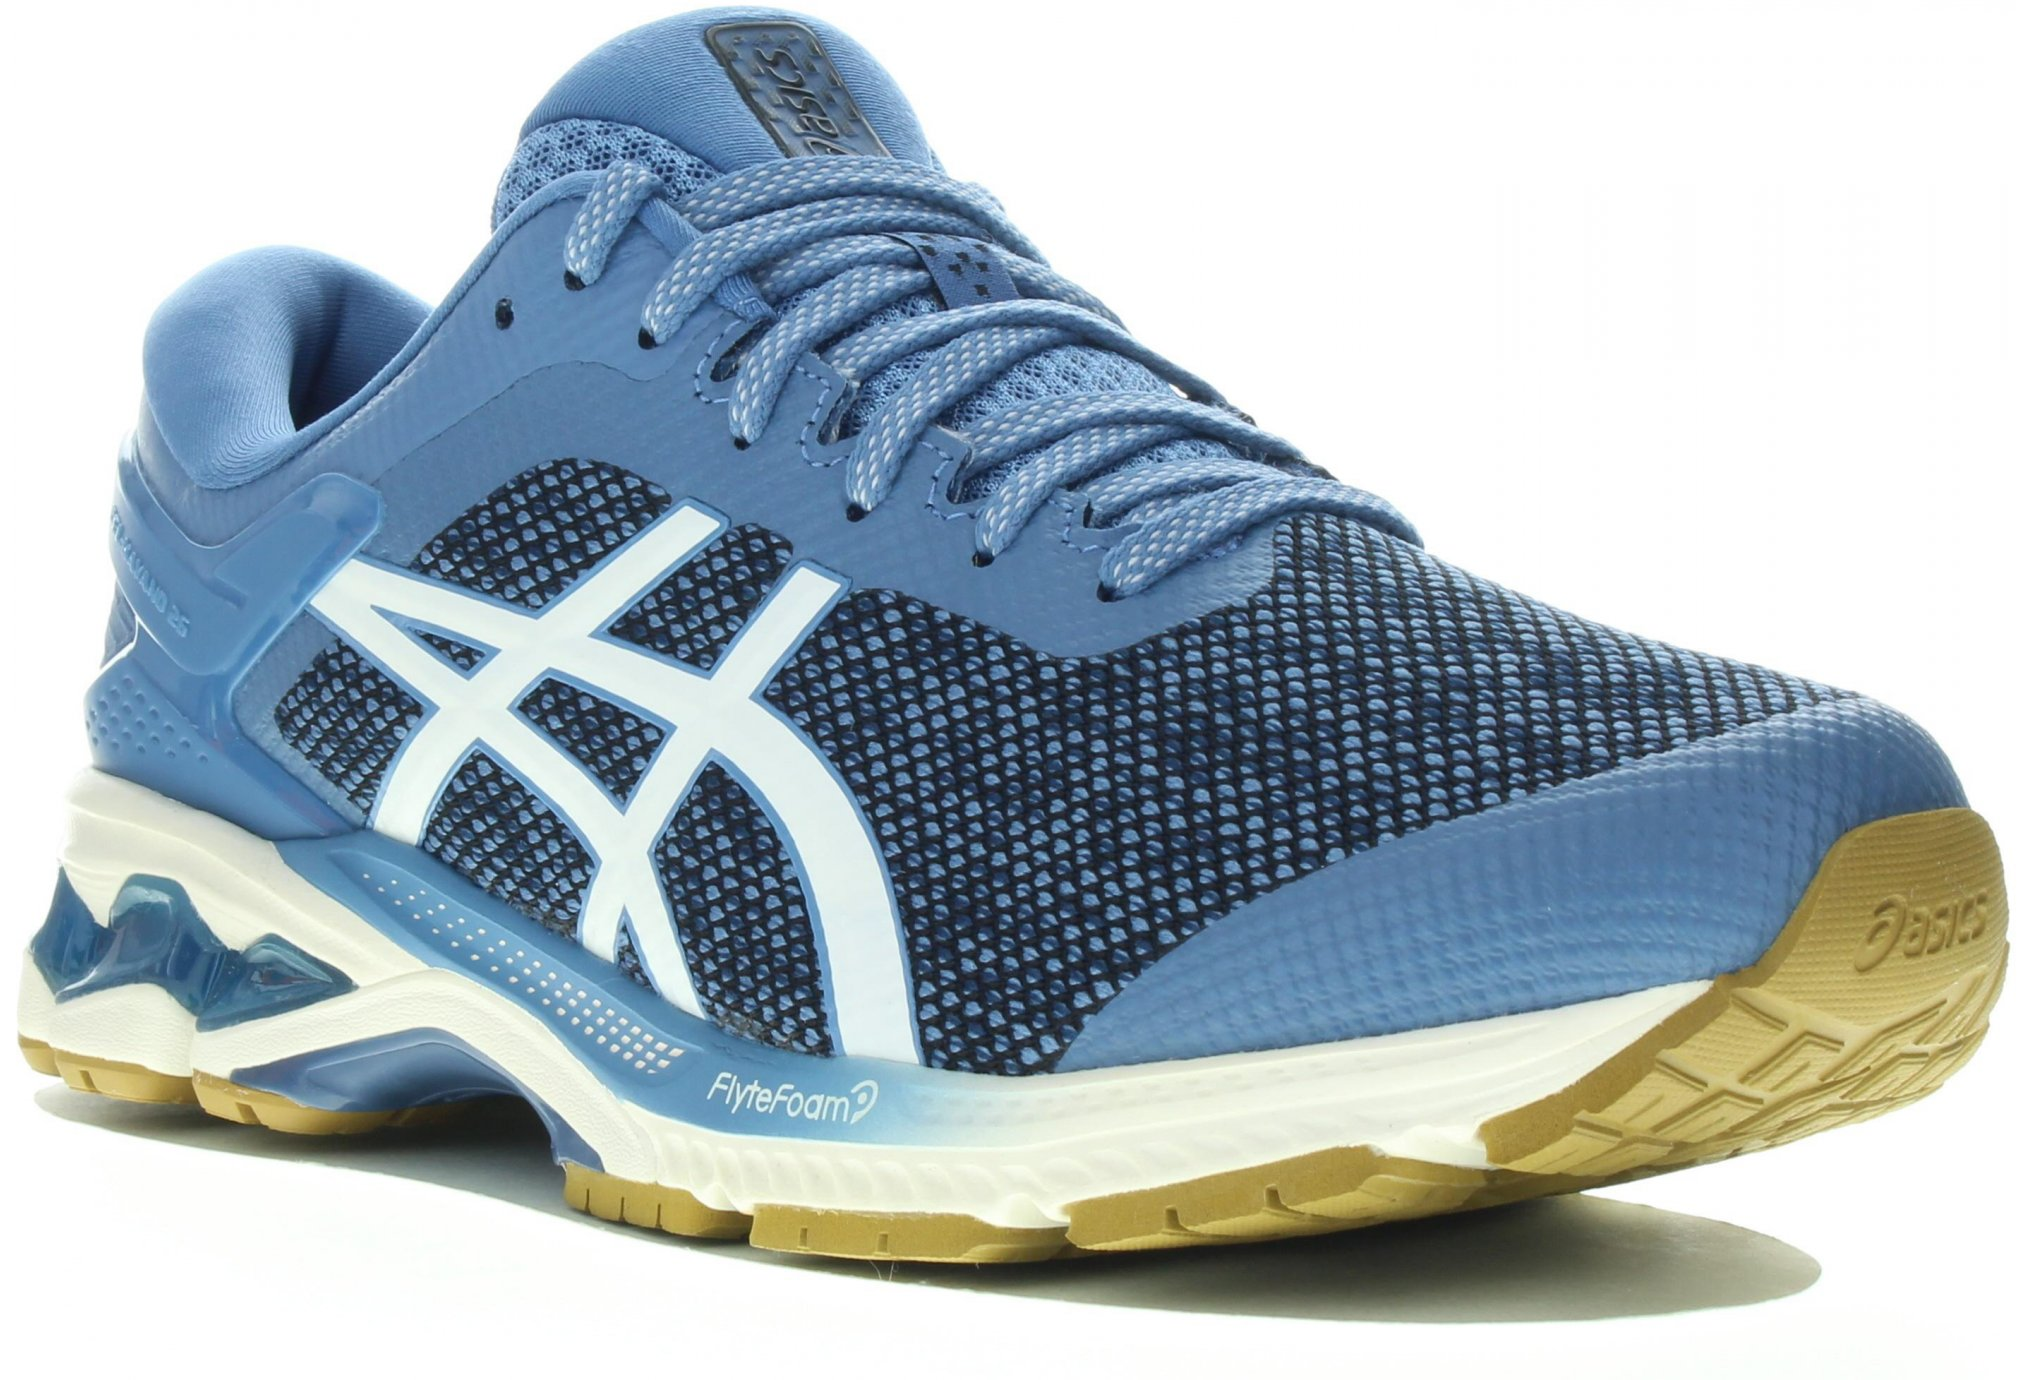 Asics Gel Kayano 26 MX Chaussures homme